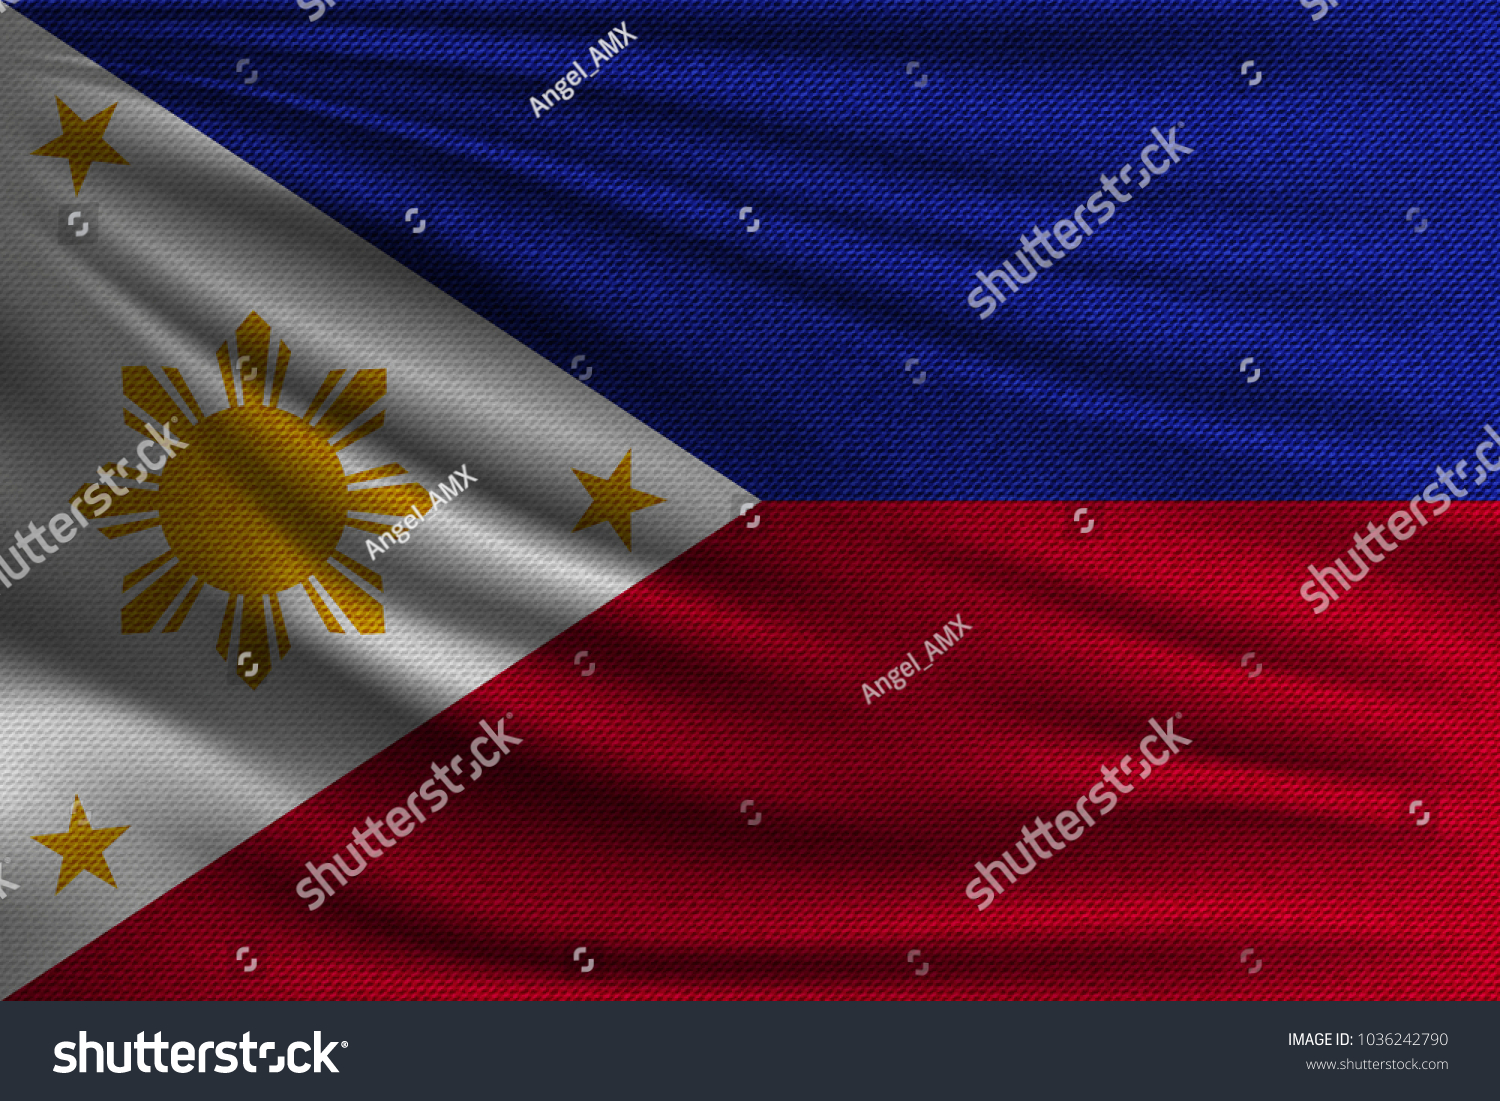 National flag philippines symbol state on stock vector 1036242790 the national flag of philippines the symbol of the state on wavy cotton fabric buycottarizona Images